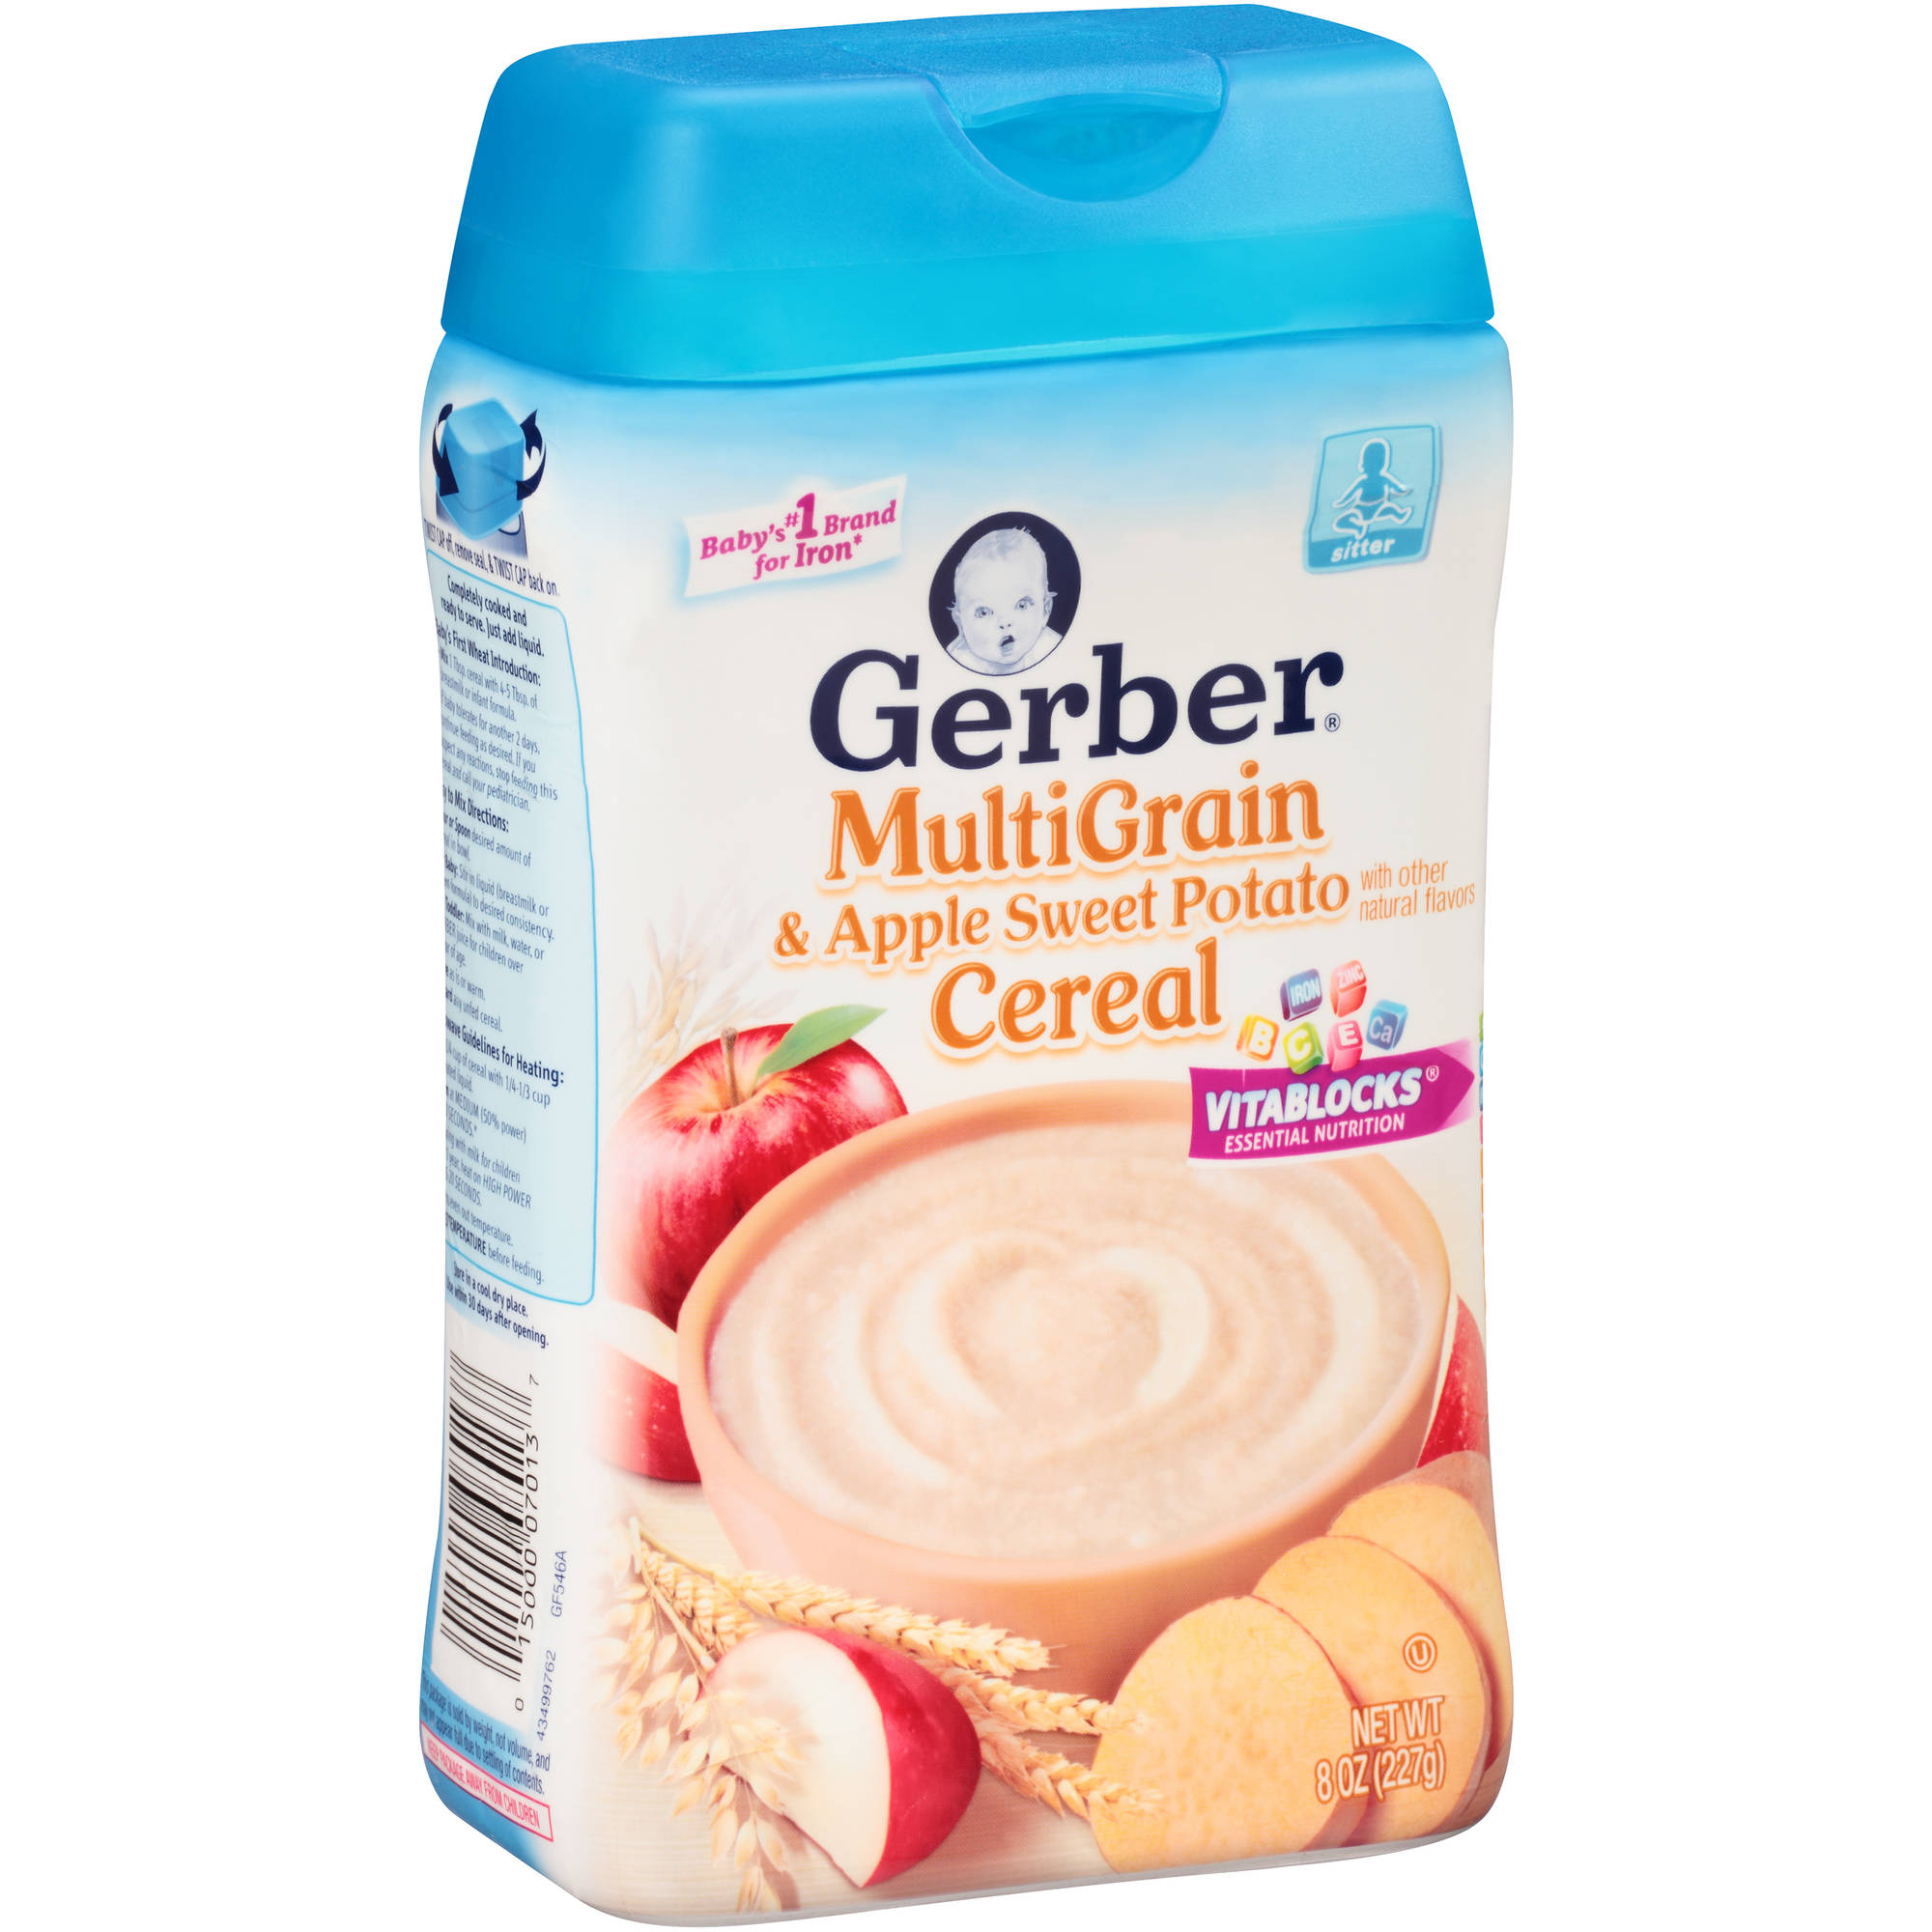 Gerber Multigrain Apple Sweet Potato Baby Cereal, 8 oz